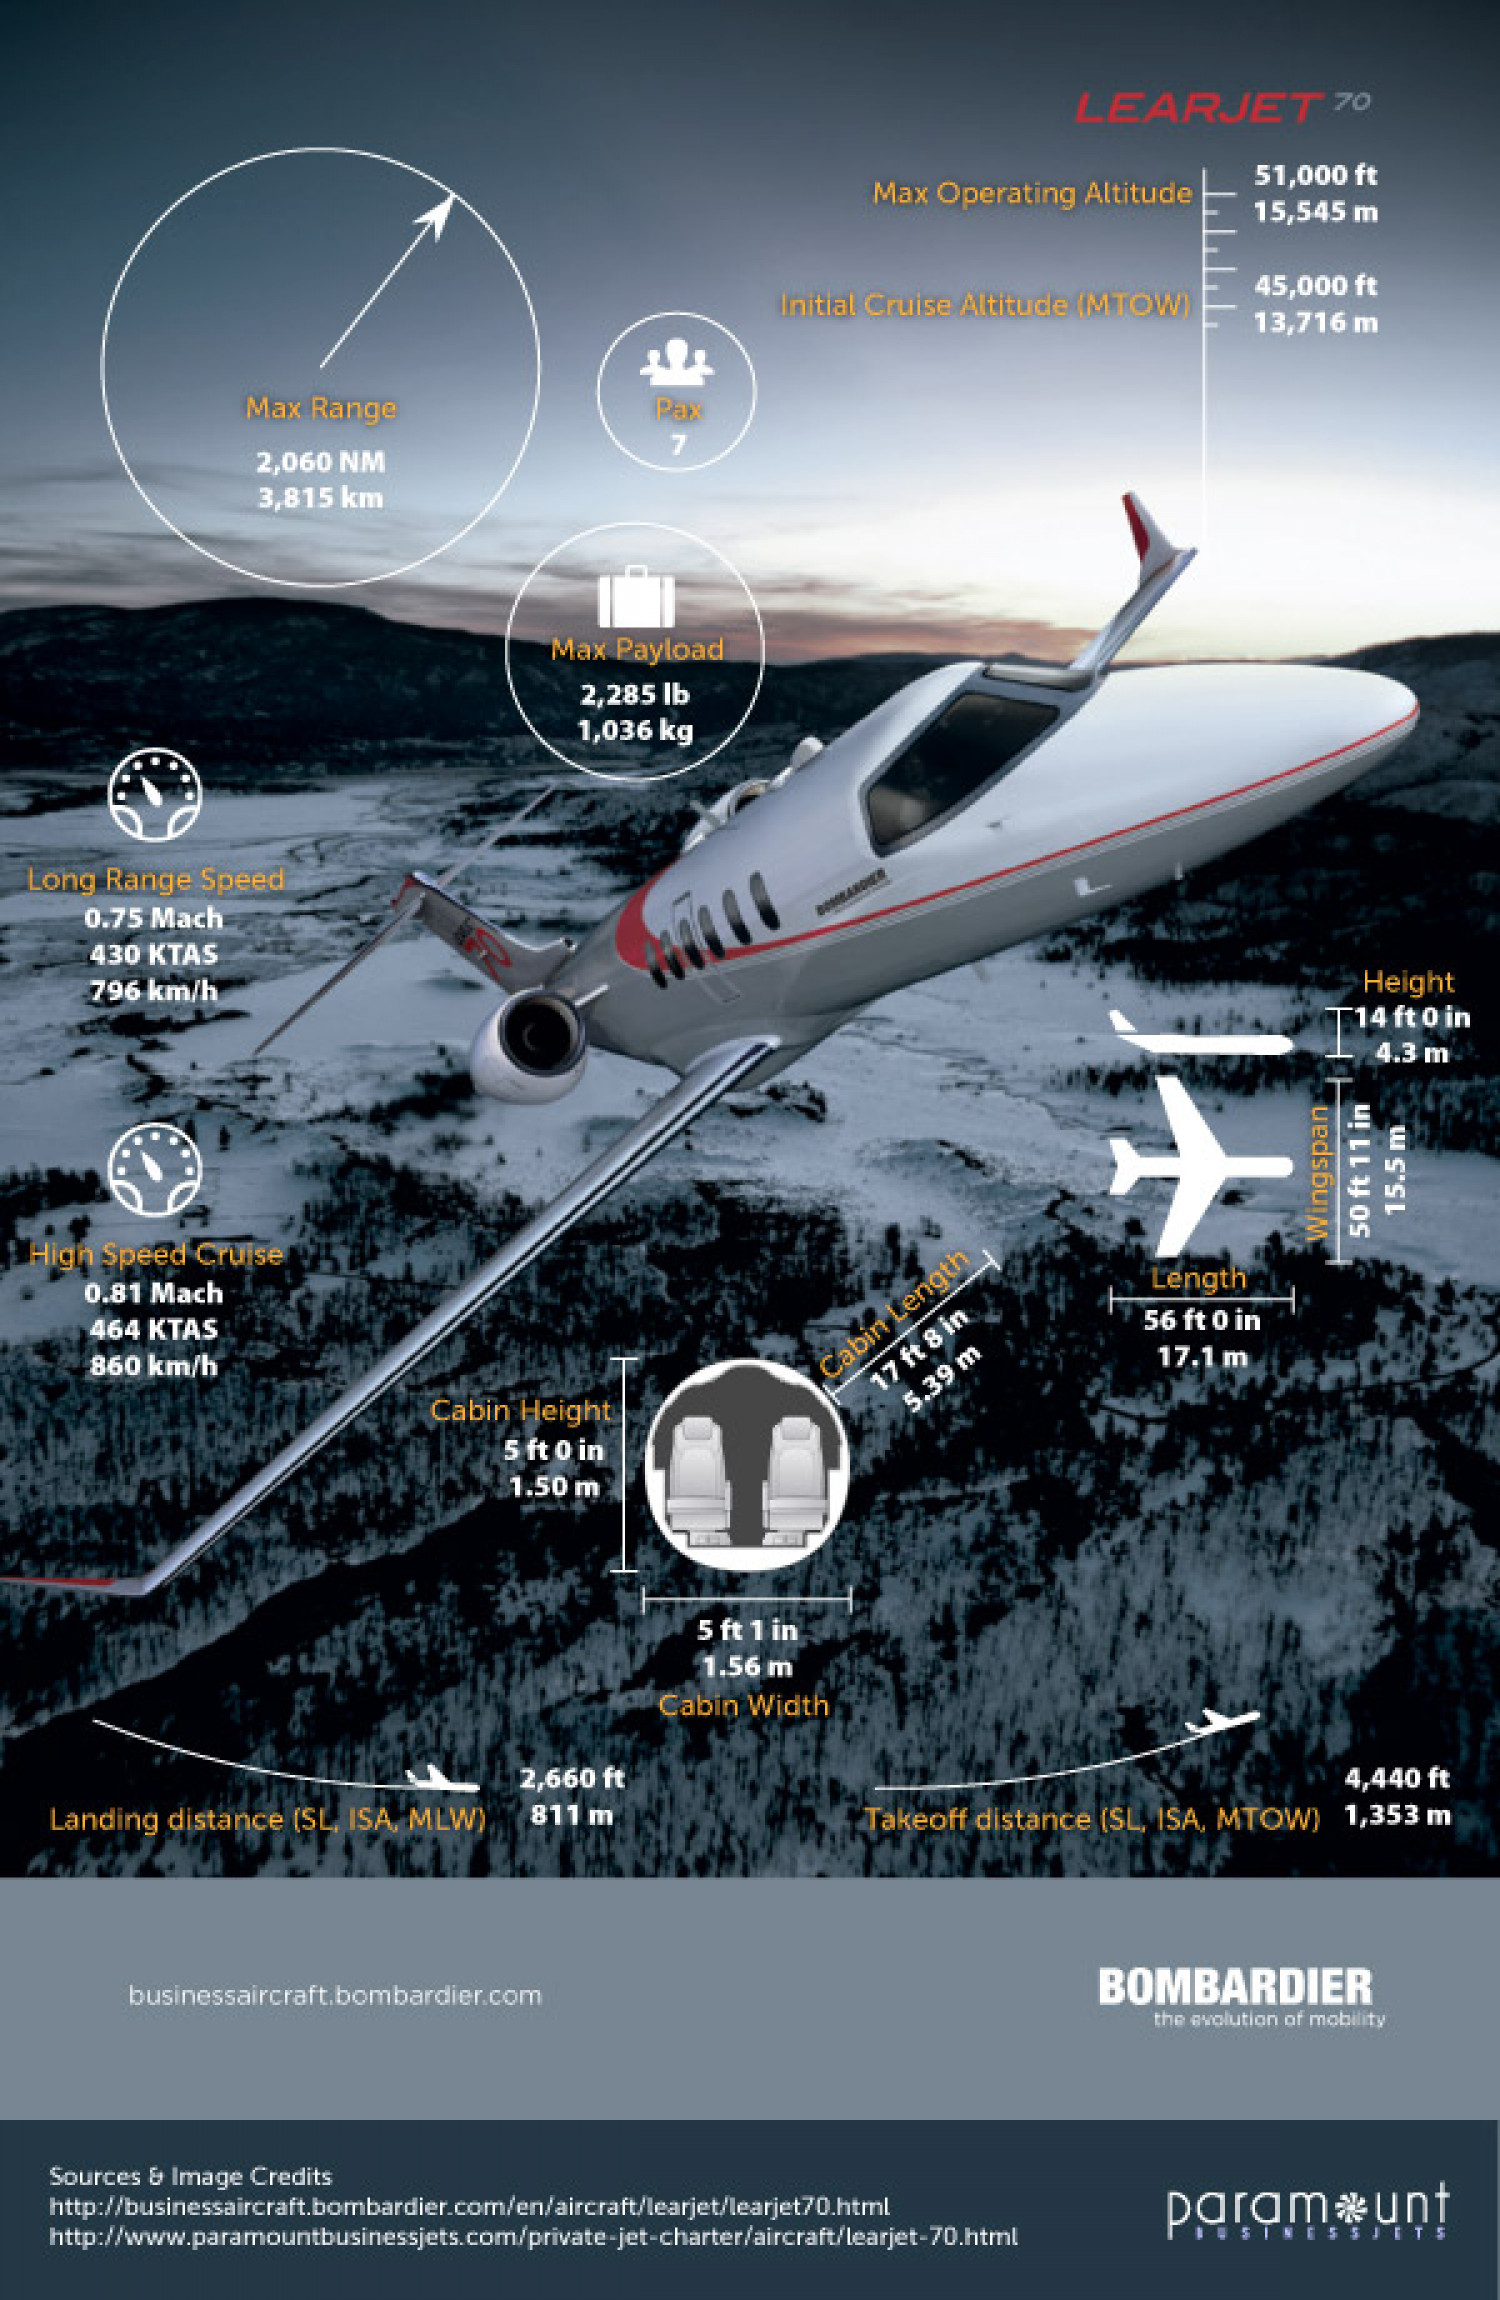 Learjet 70 Key Specifications Infographic